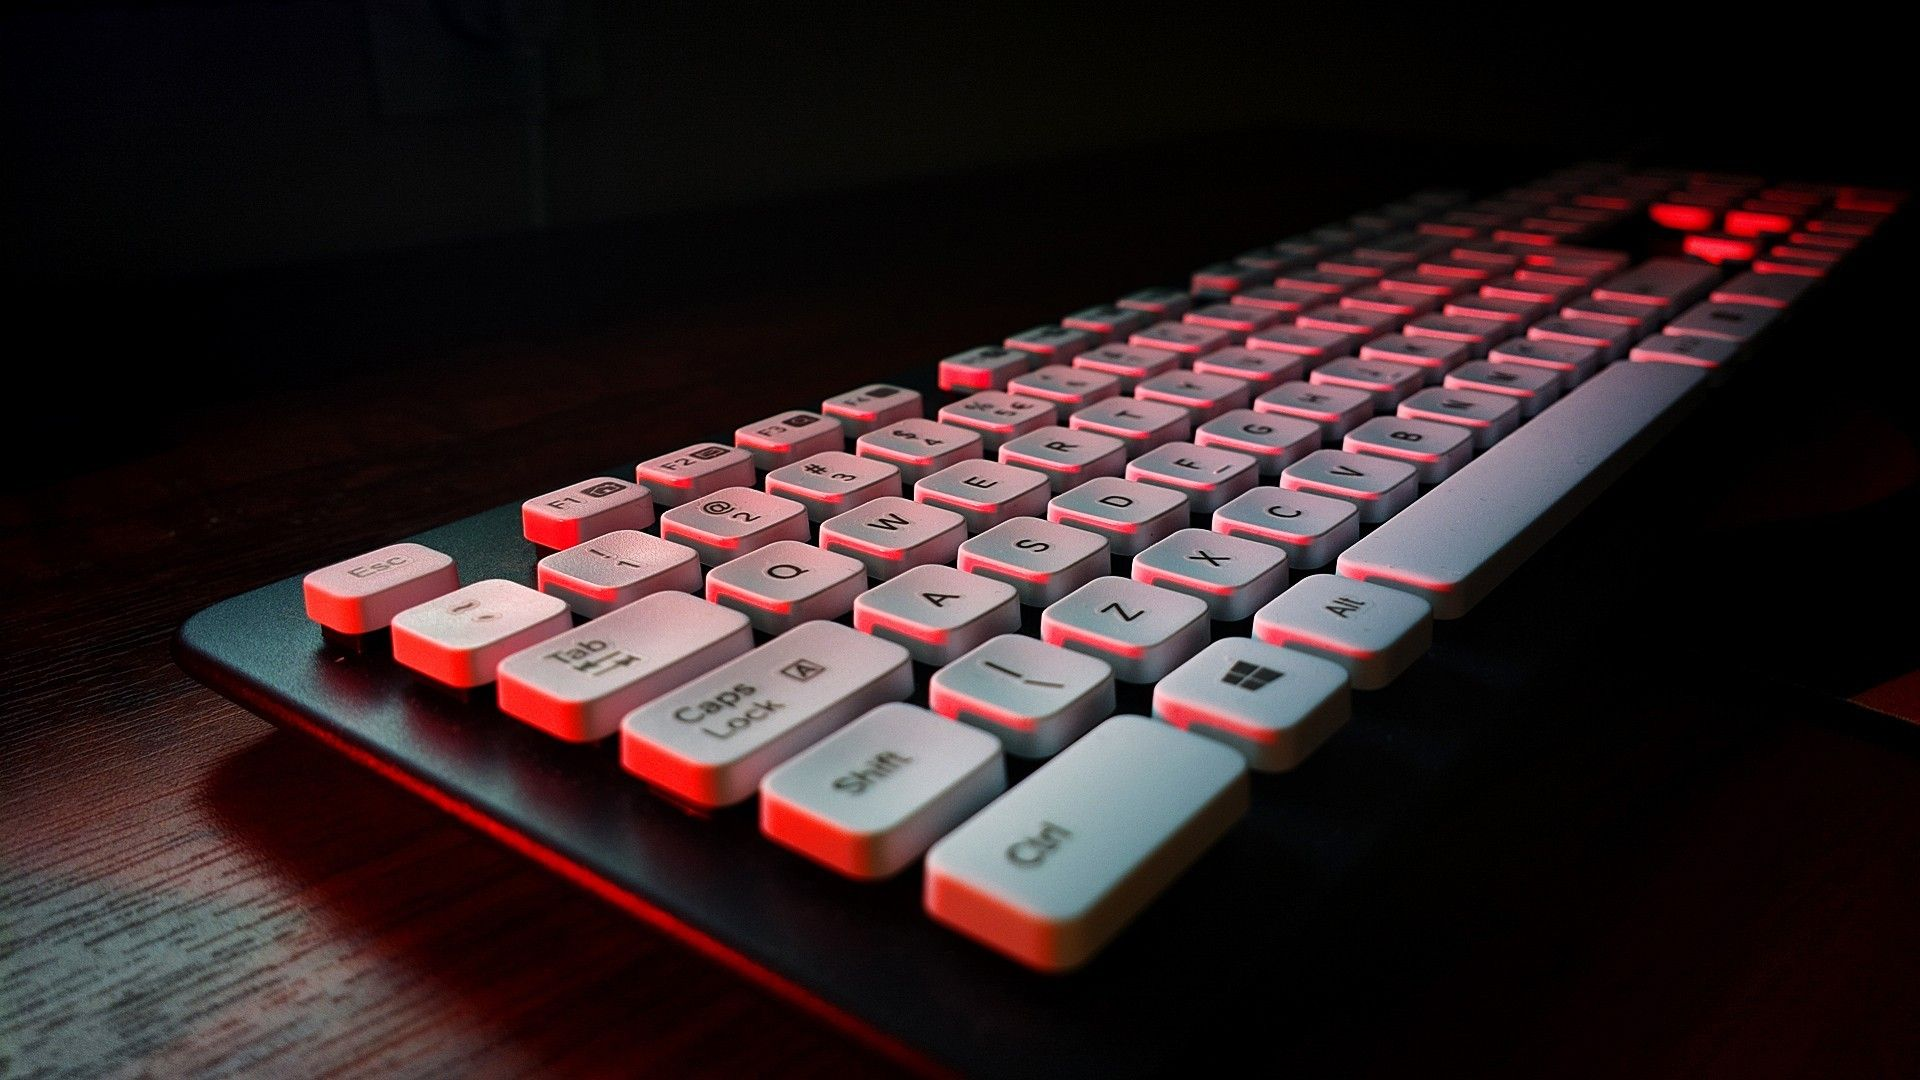 pc keyboard picture